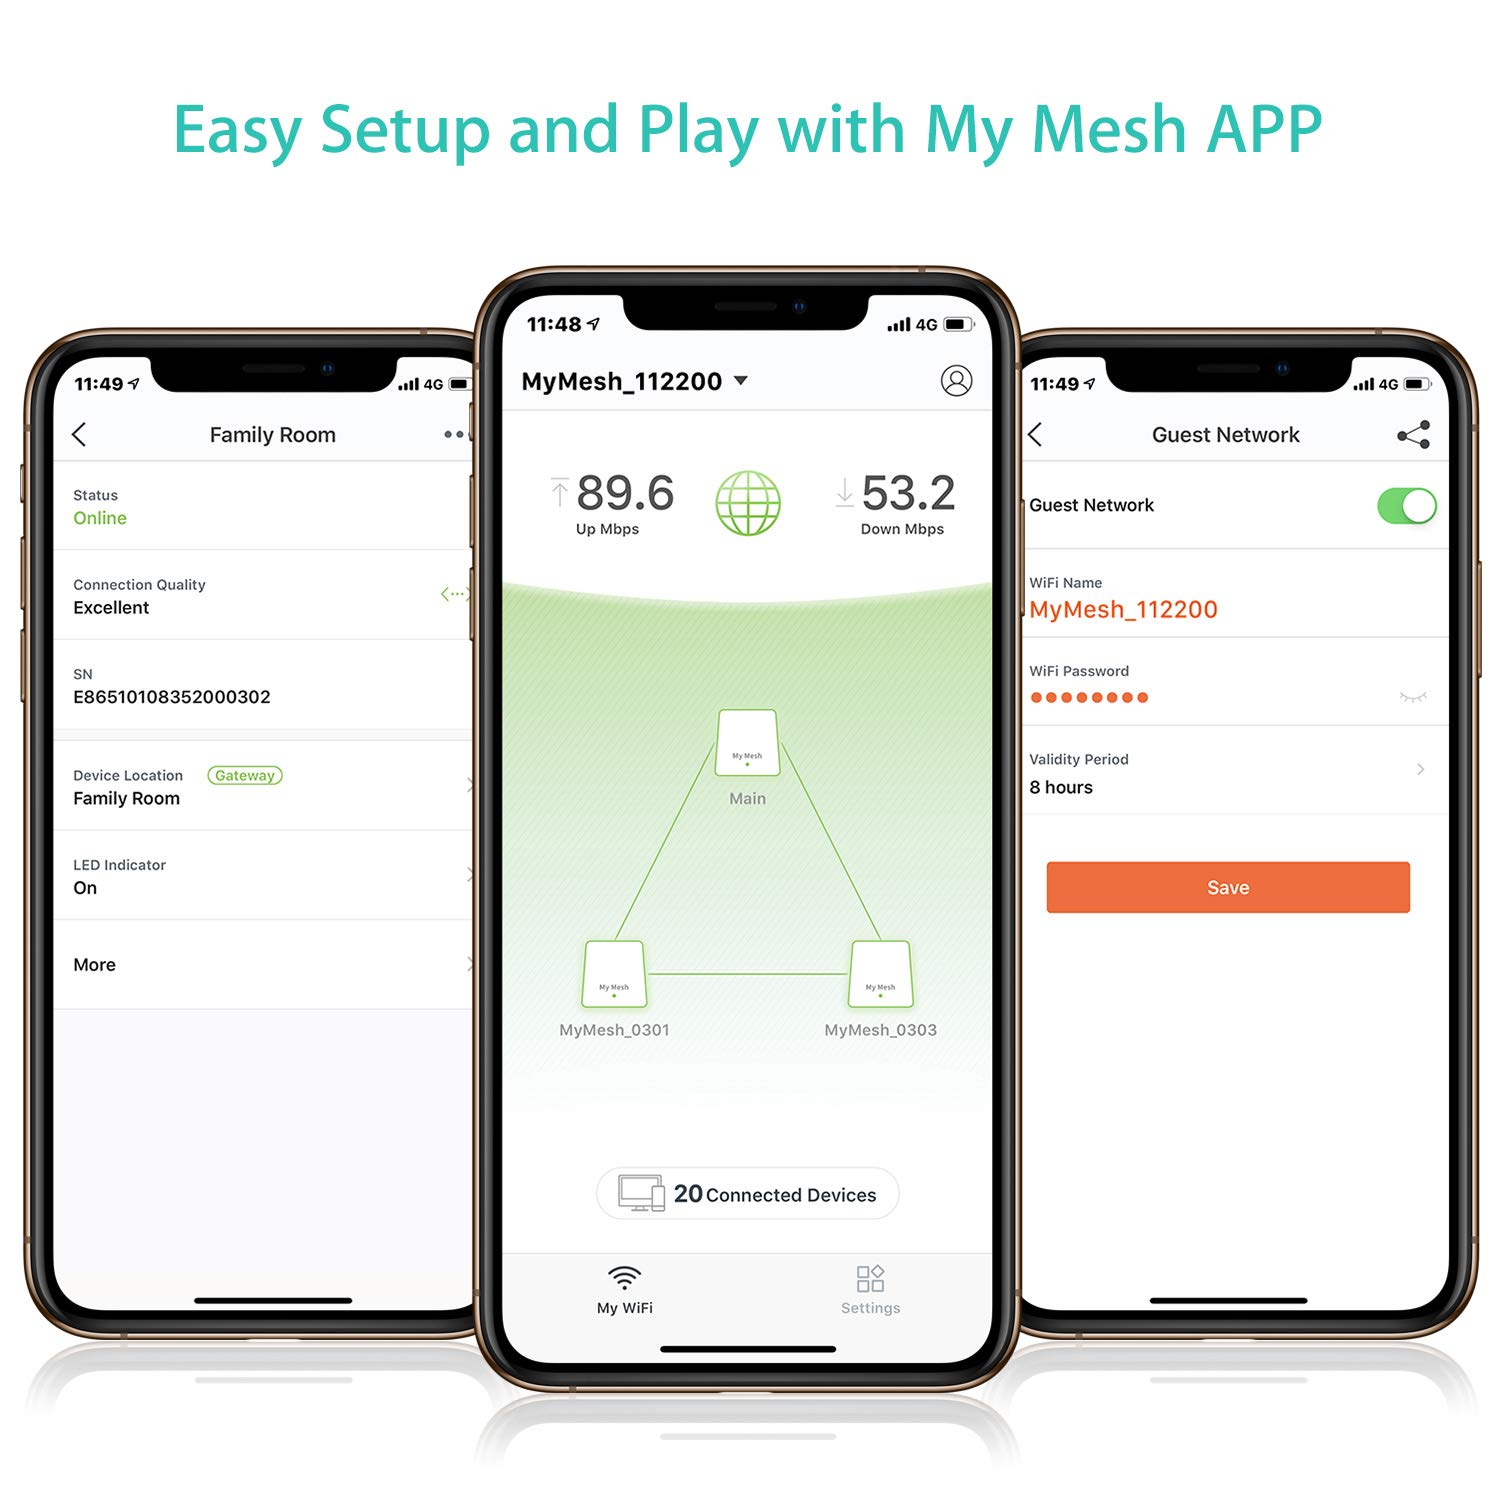 Meshforce Whole Home Mesh WiFi System (3 Pack), Dual Band AC1200 Router Replacement for Seamless and High Performance Wireless Coverage up to 6+ Bedrooms by Meshforce (Image #6)